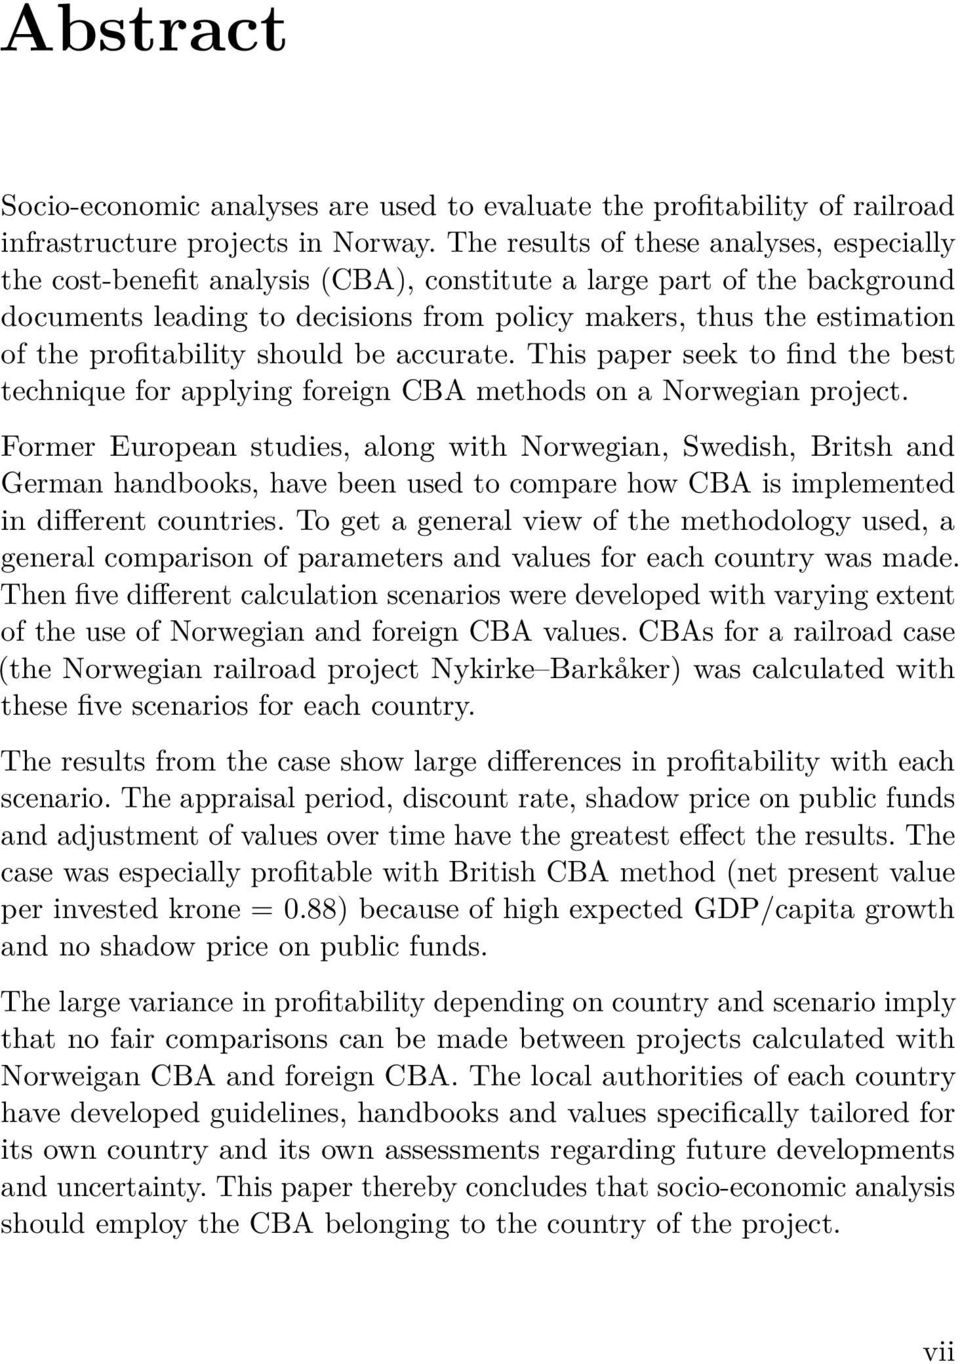 profitability should be accurate. This paper seek to find the best technique for applying foreign CBA methods on a Norwegian project.